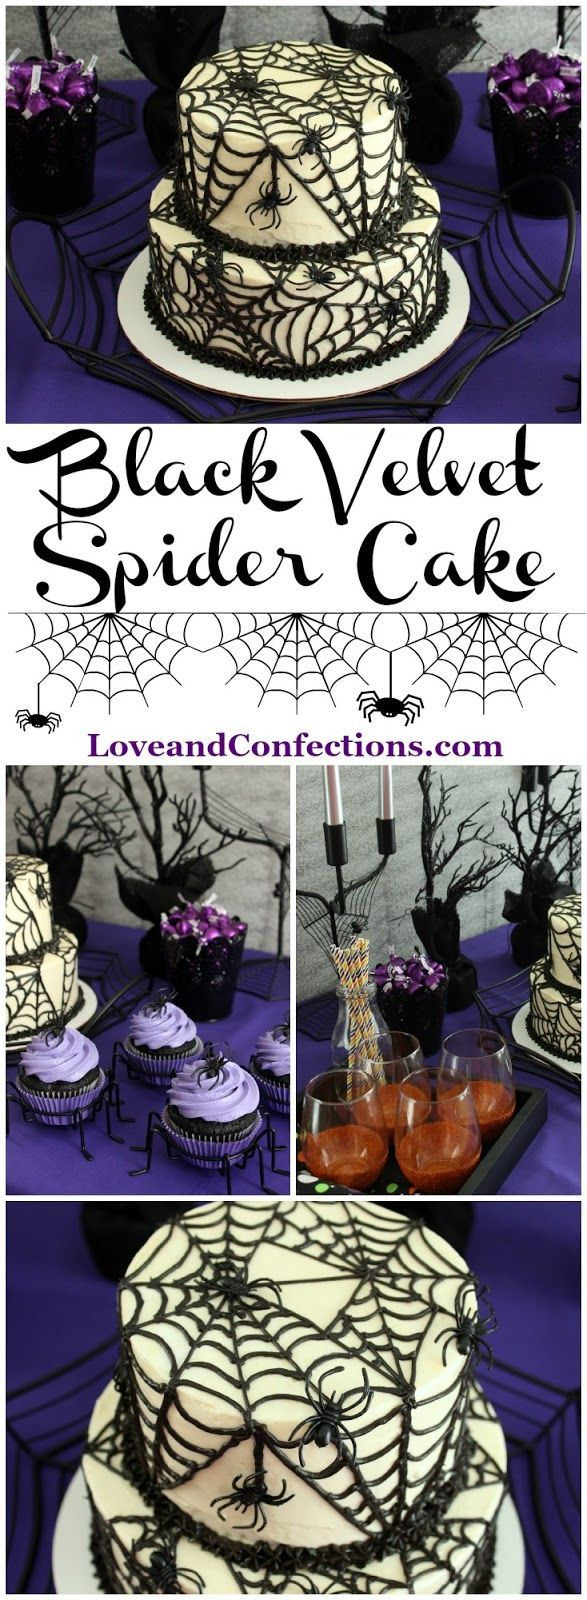 Black Velvet Spider Cake from LoveandConfections.com for #SundaySupper with @dixiecrystals